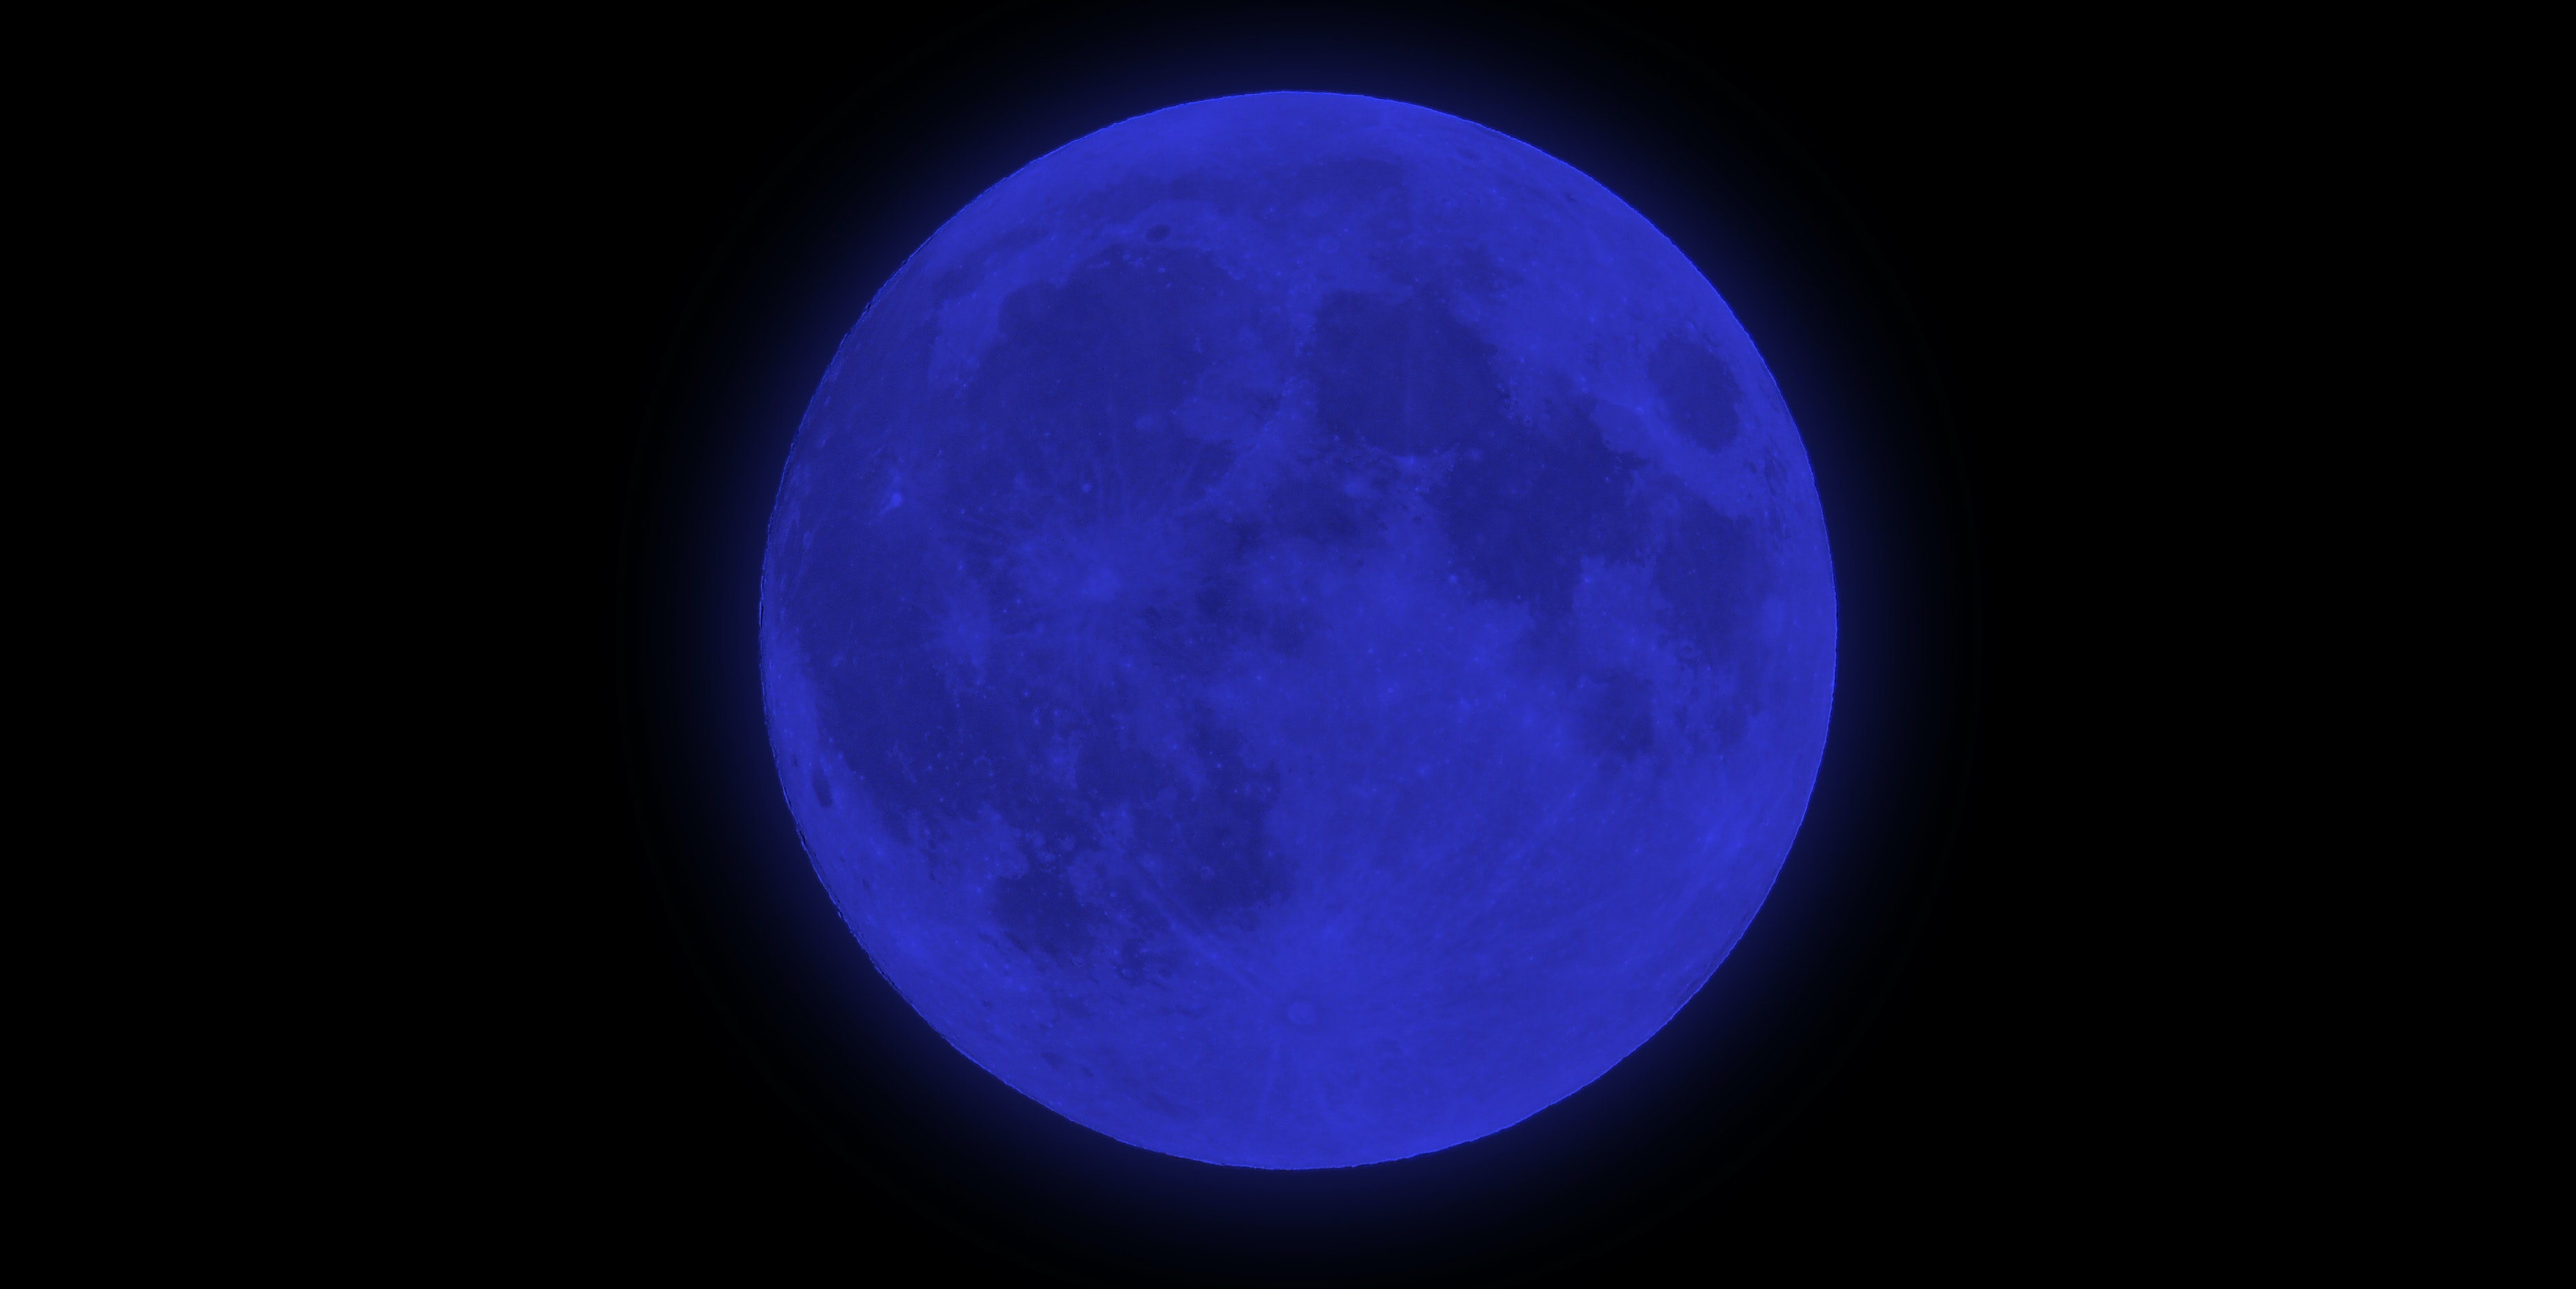 This Weekend's Blue Moon Will Be the OTHER Type of Blue Moon